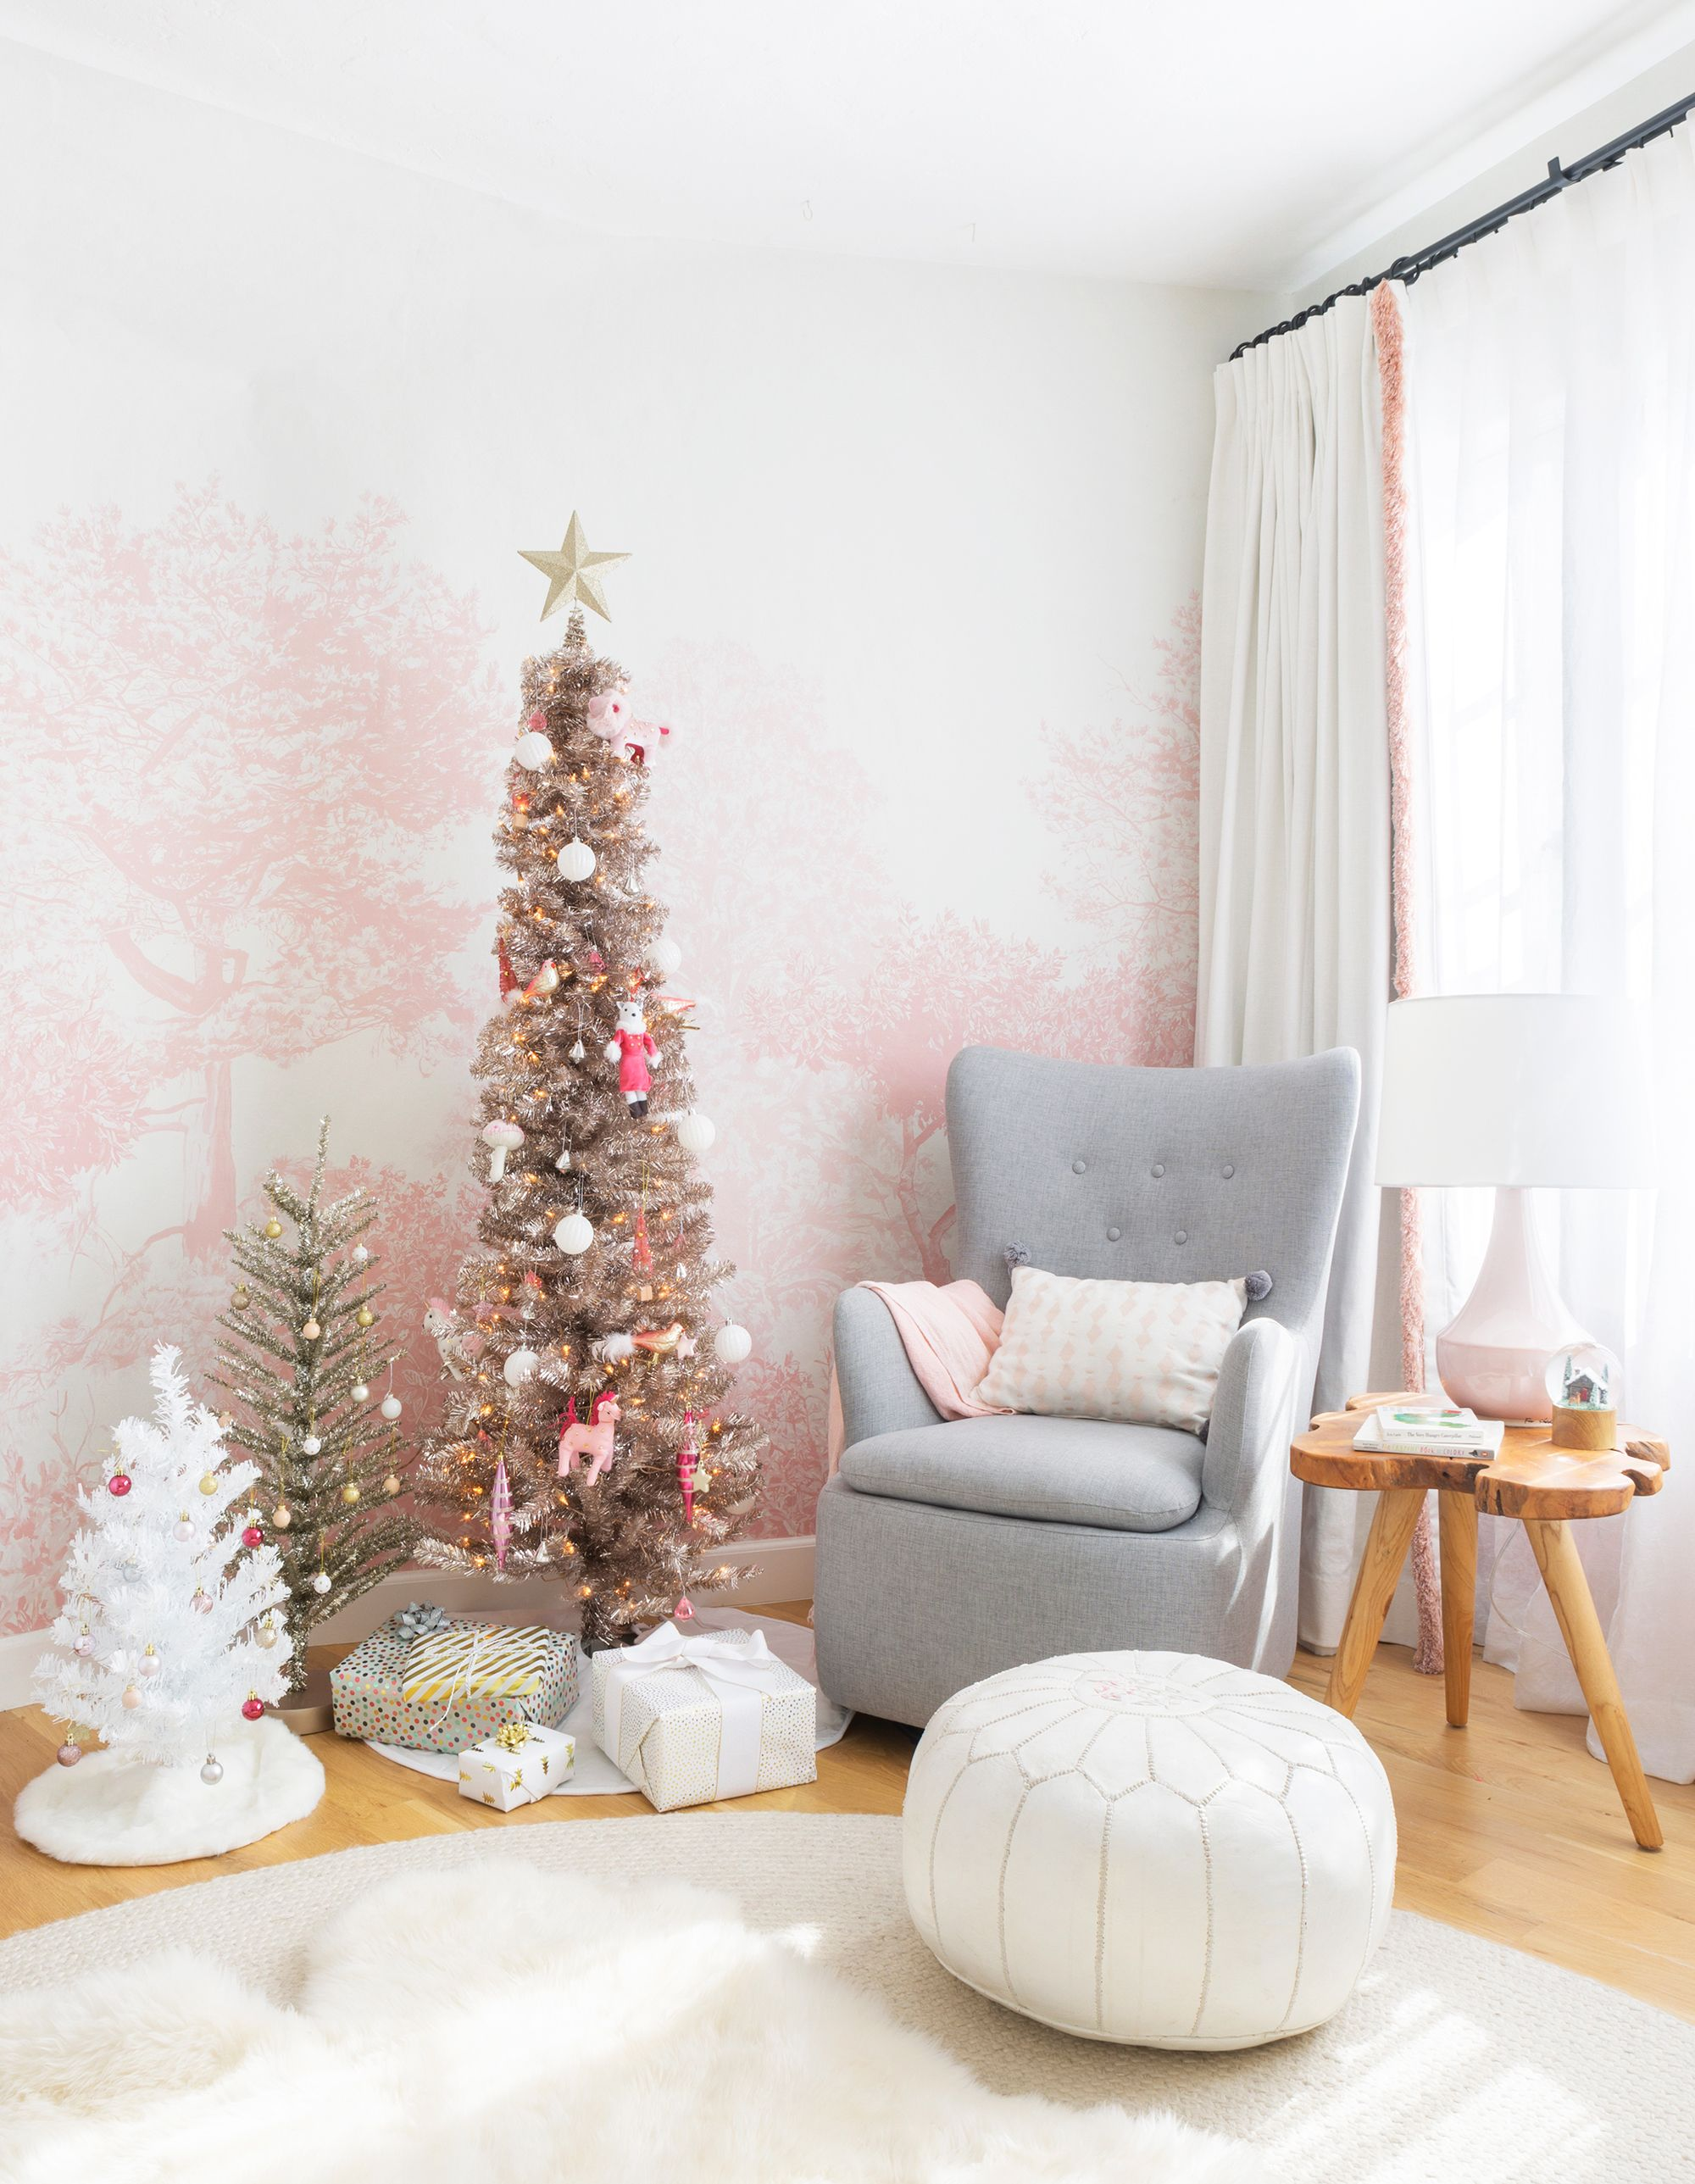 19 Unique Christmas Colors For Holiday Decorating Best Holiday Color Schemes